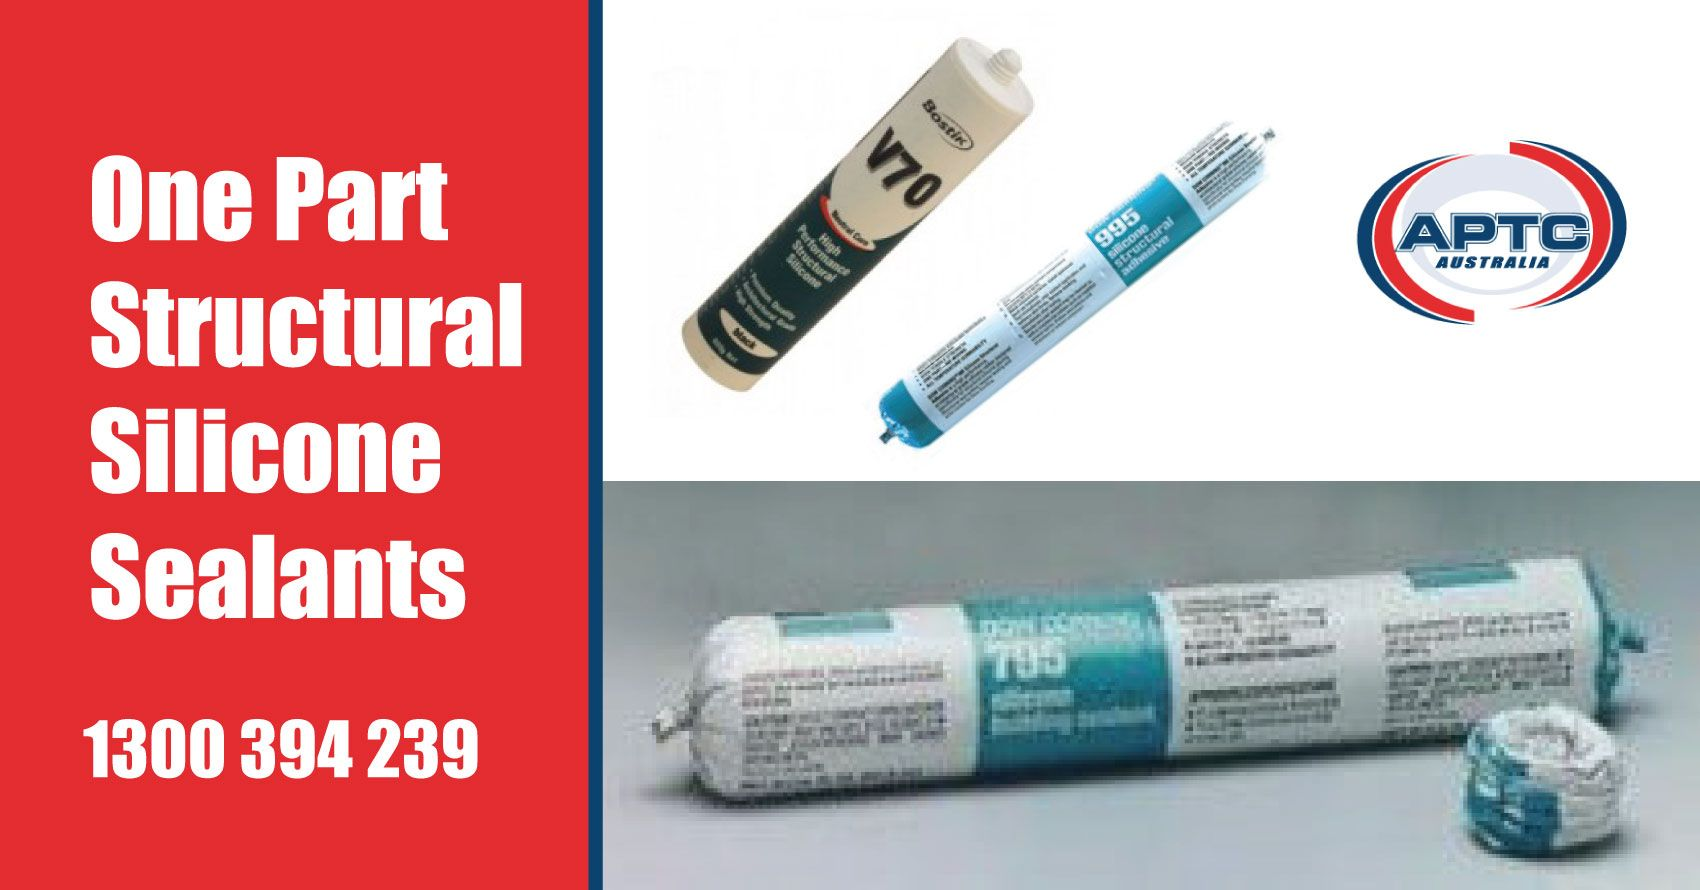 One Part Structural Silicone Sealants are predominately